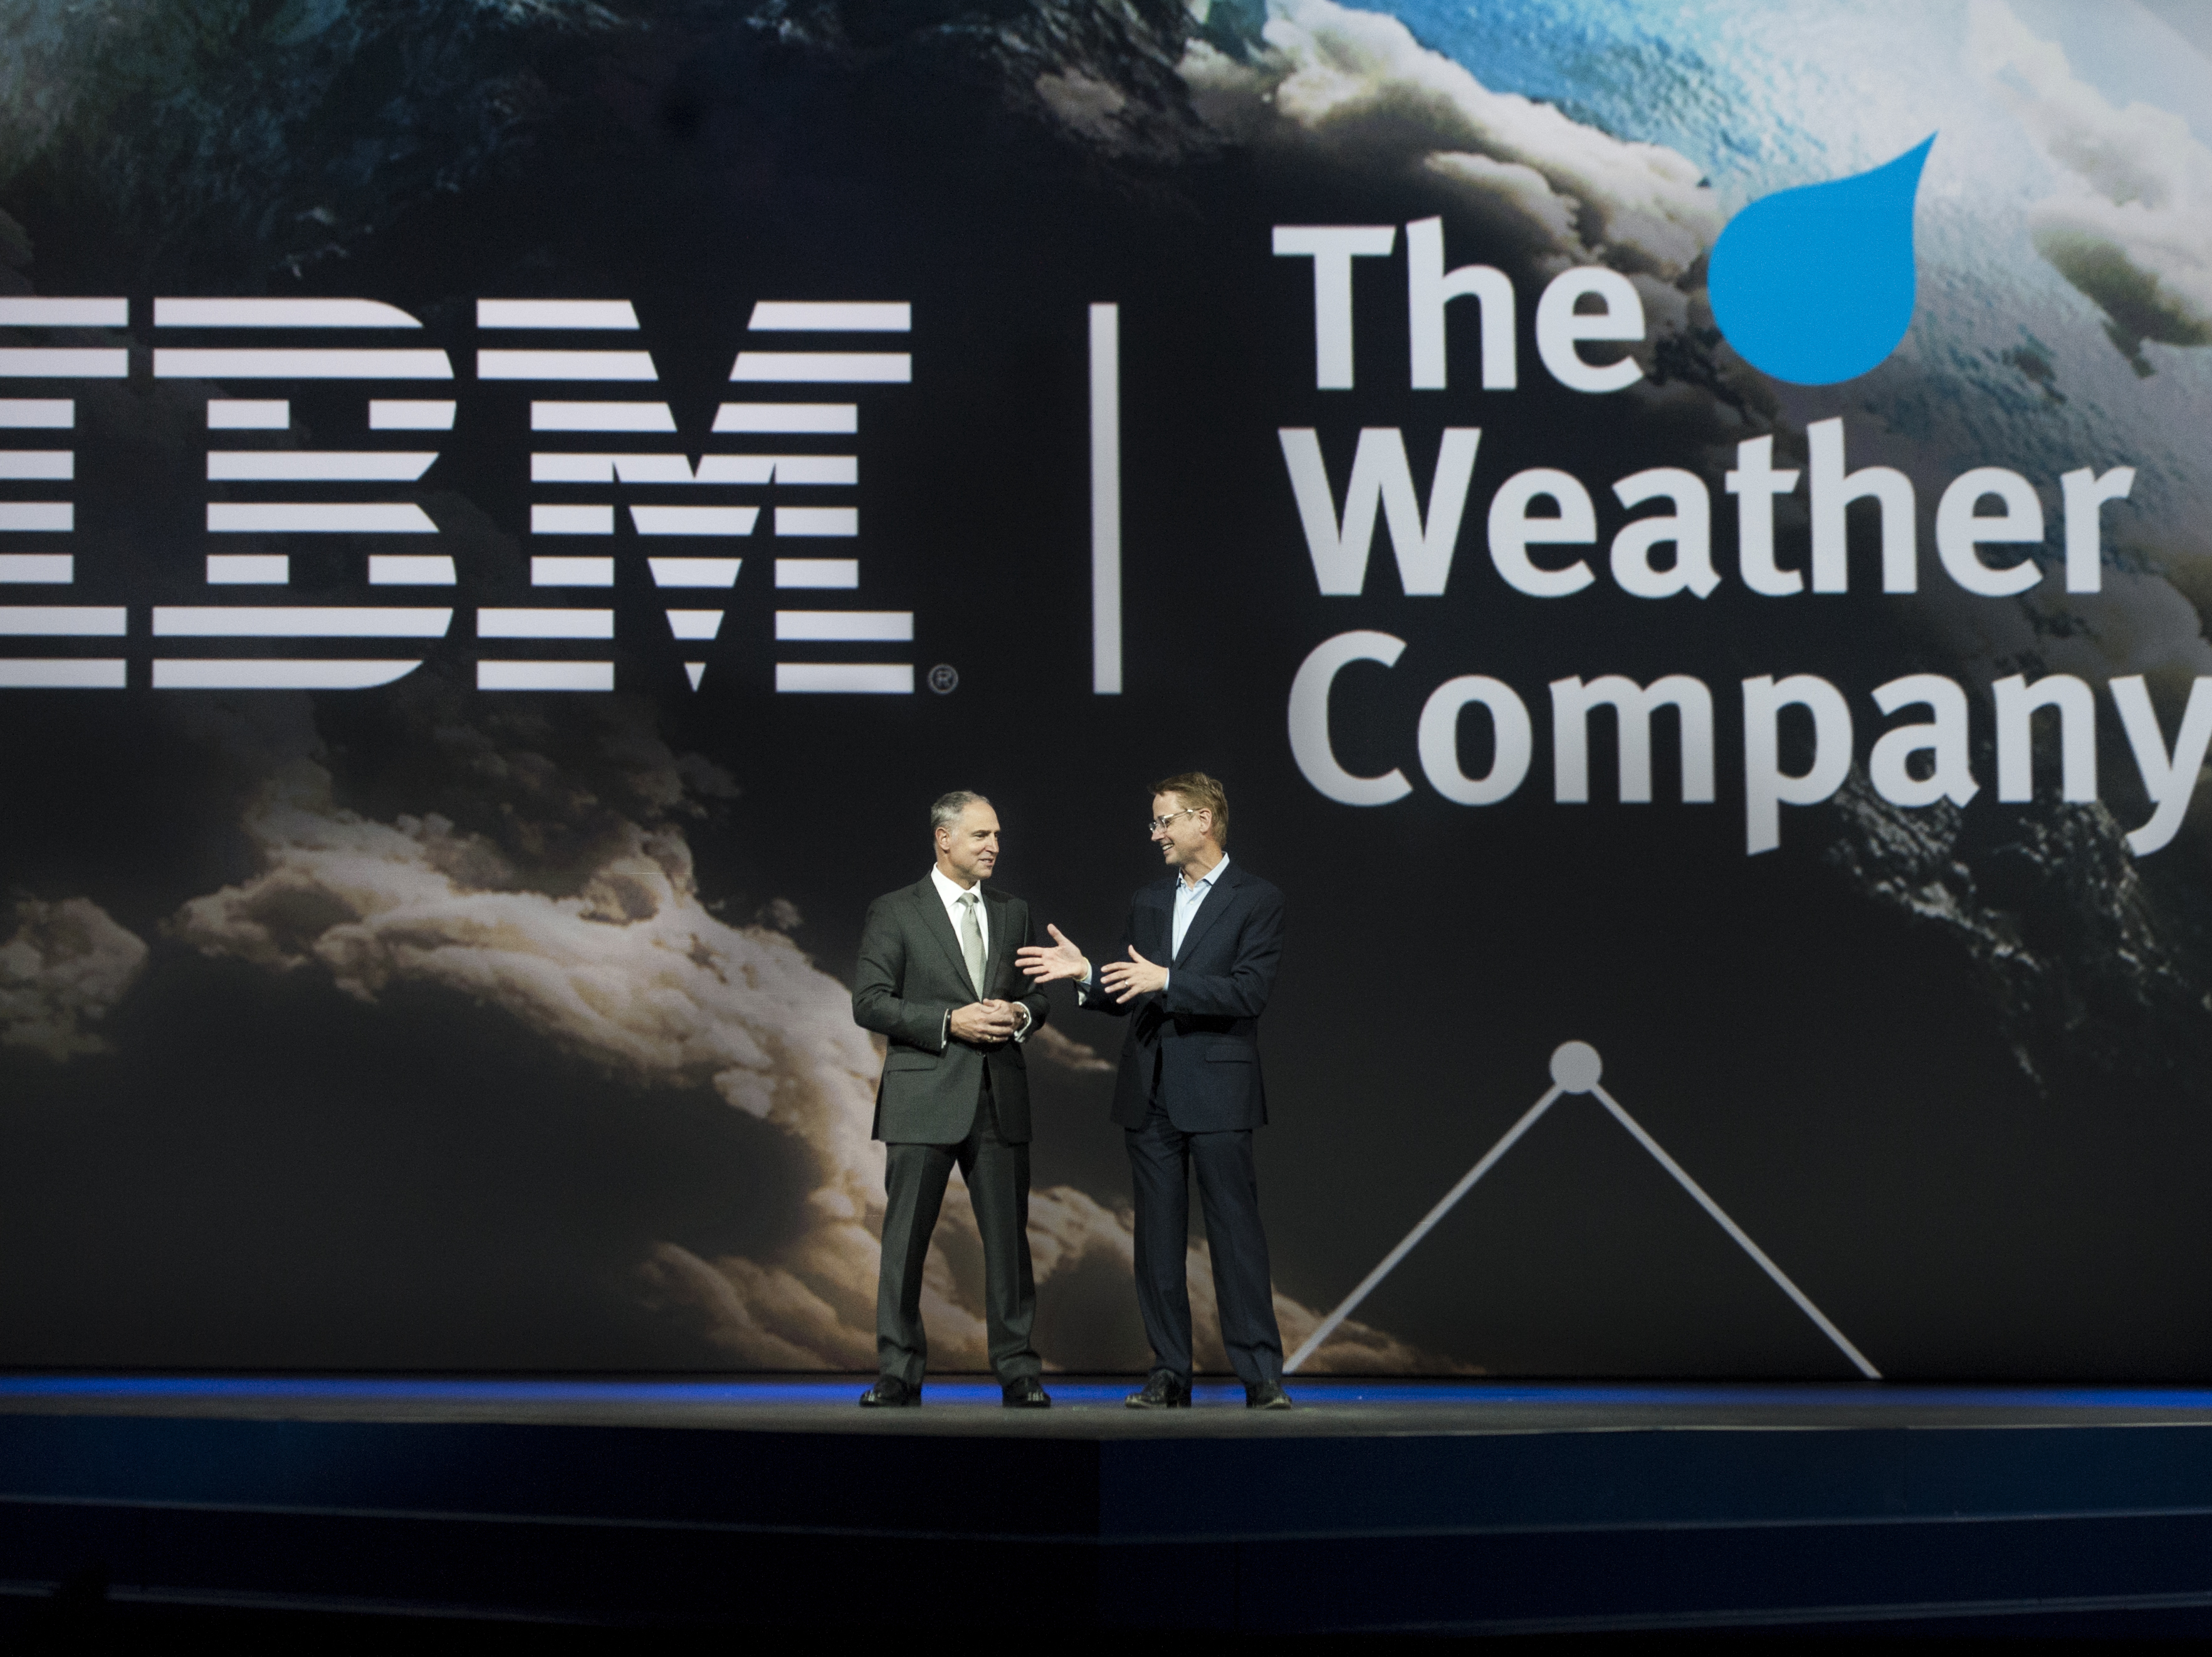 Ibm conference in las vegas 2021 presidential betting whats spread betting